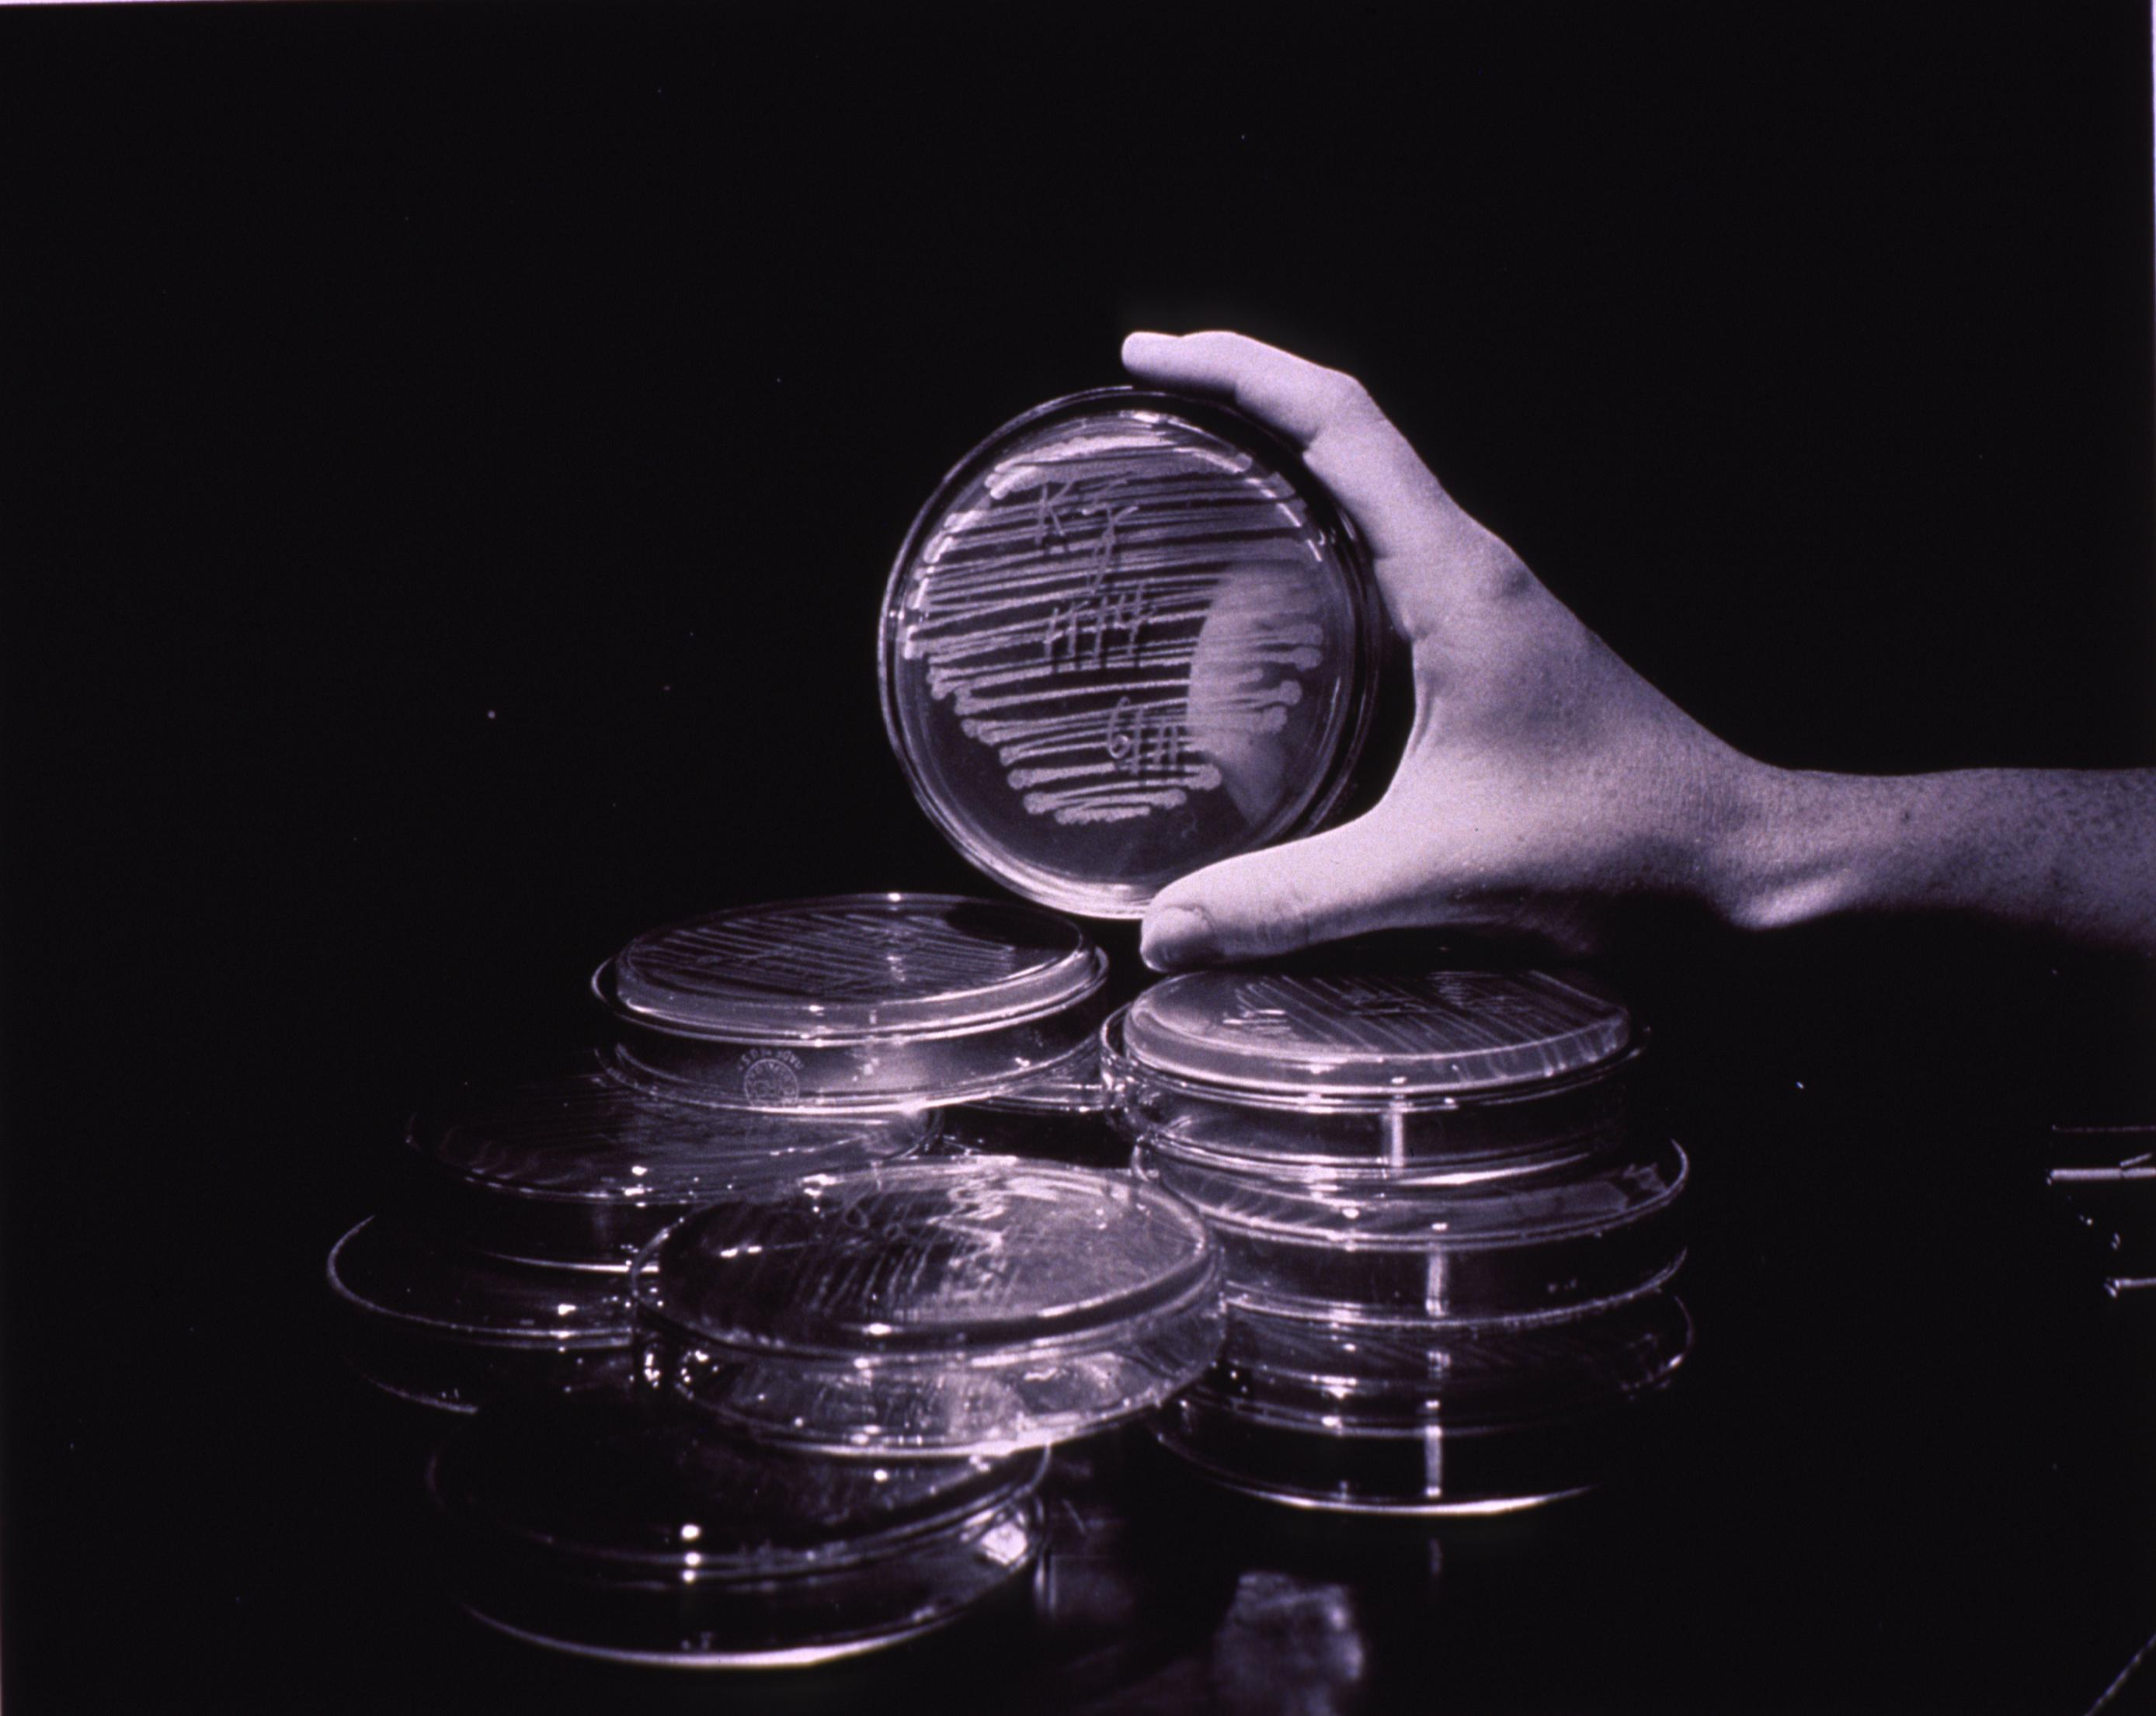 Petri dishes.